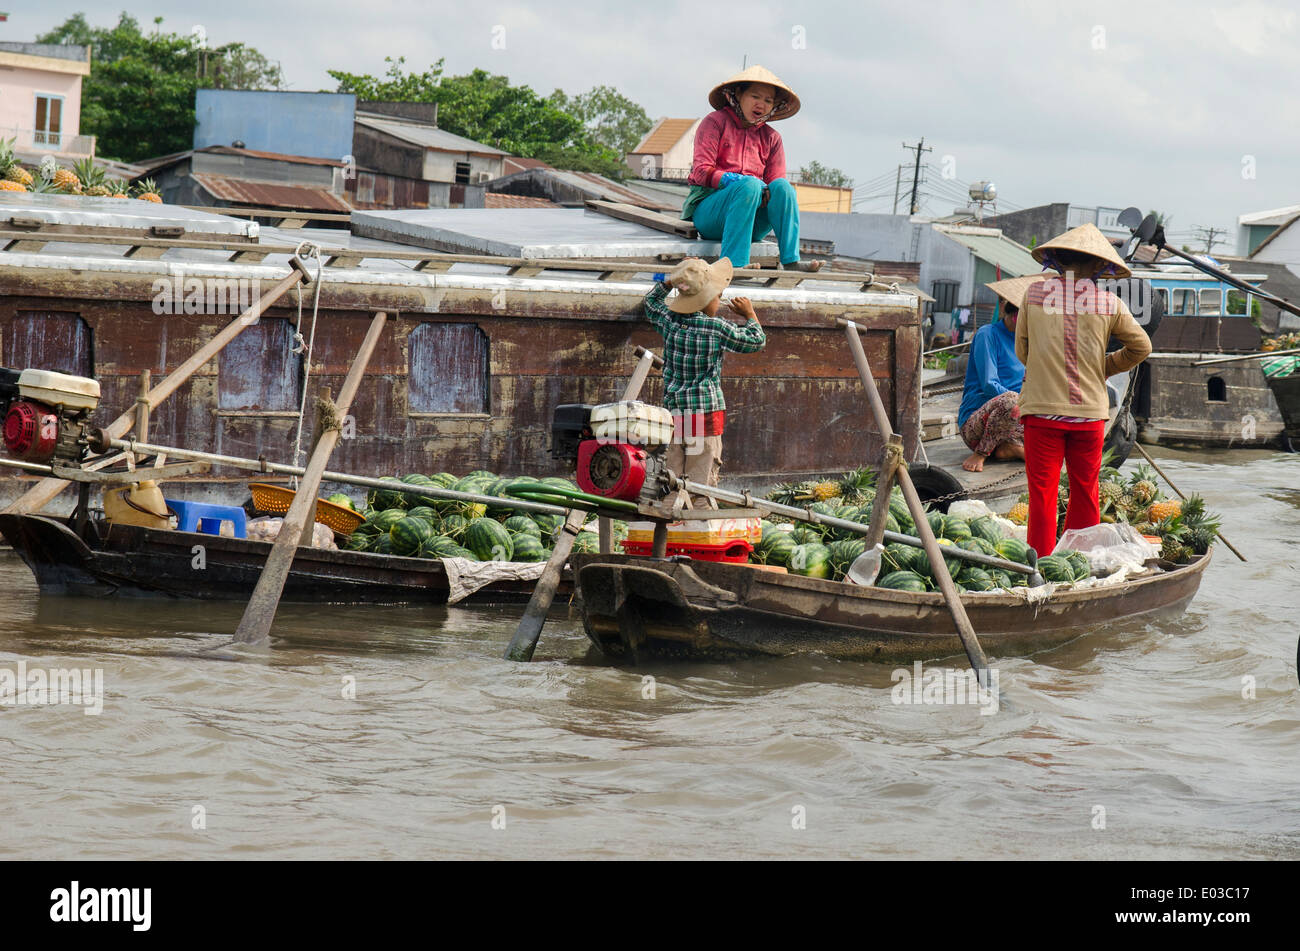 People selling fruit & vegetables, Can Rang floating market, Can Tho, Vietnam - Stock Image